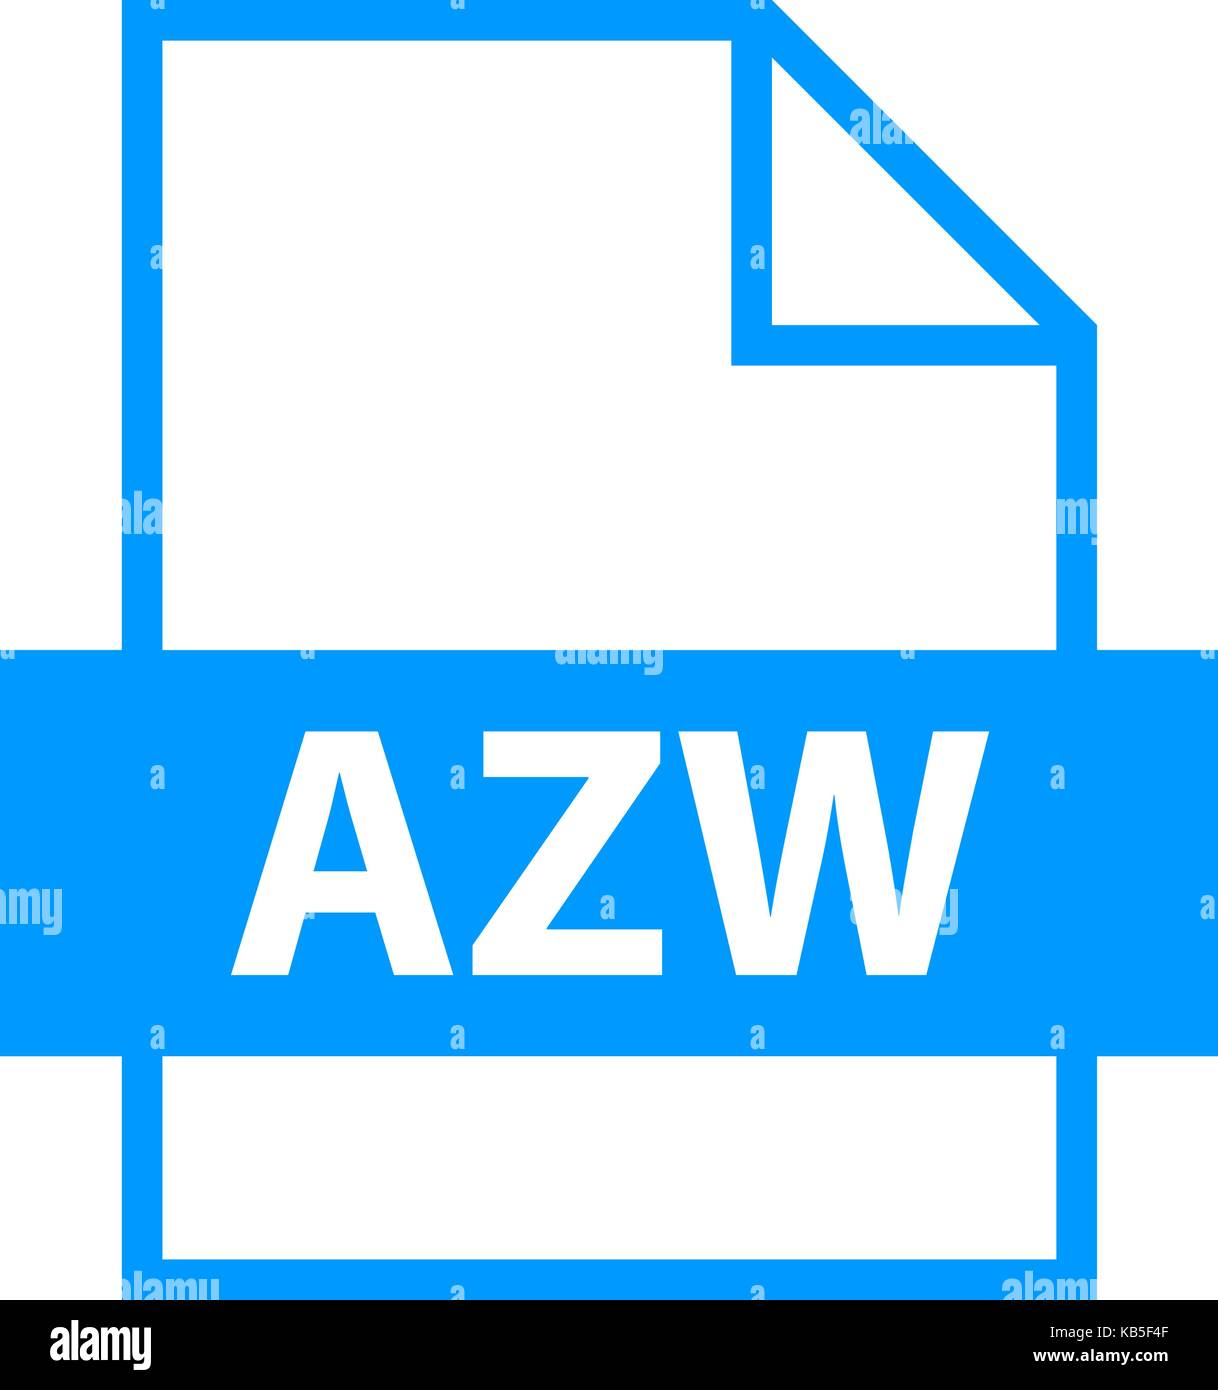 Use it in all your designs. Filename extension icon AZW Amazon Word in flat style. Quick and easy recolorable shape. - Stock Image